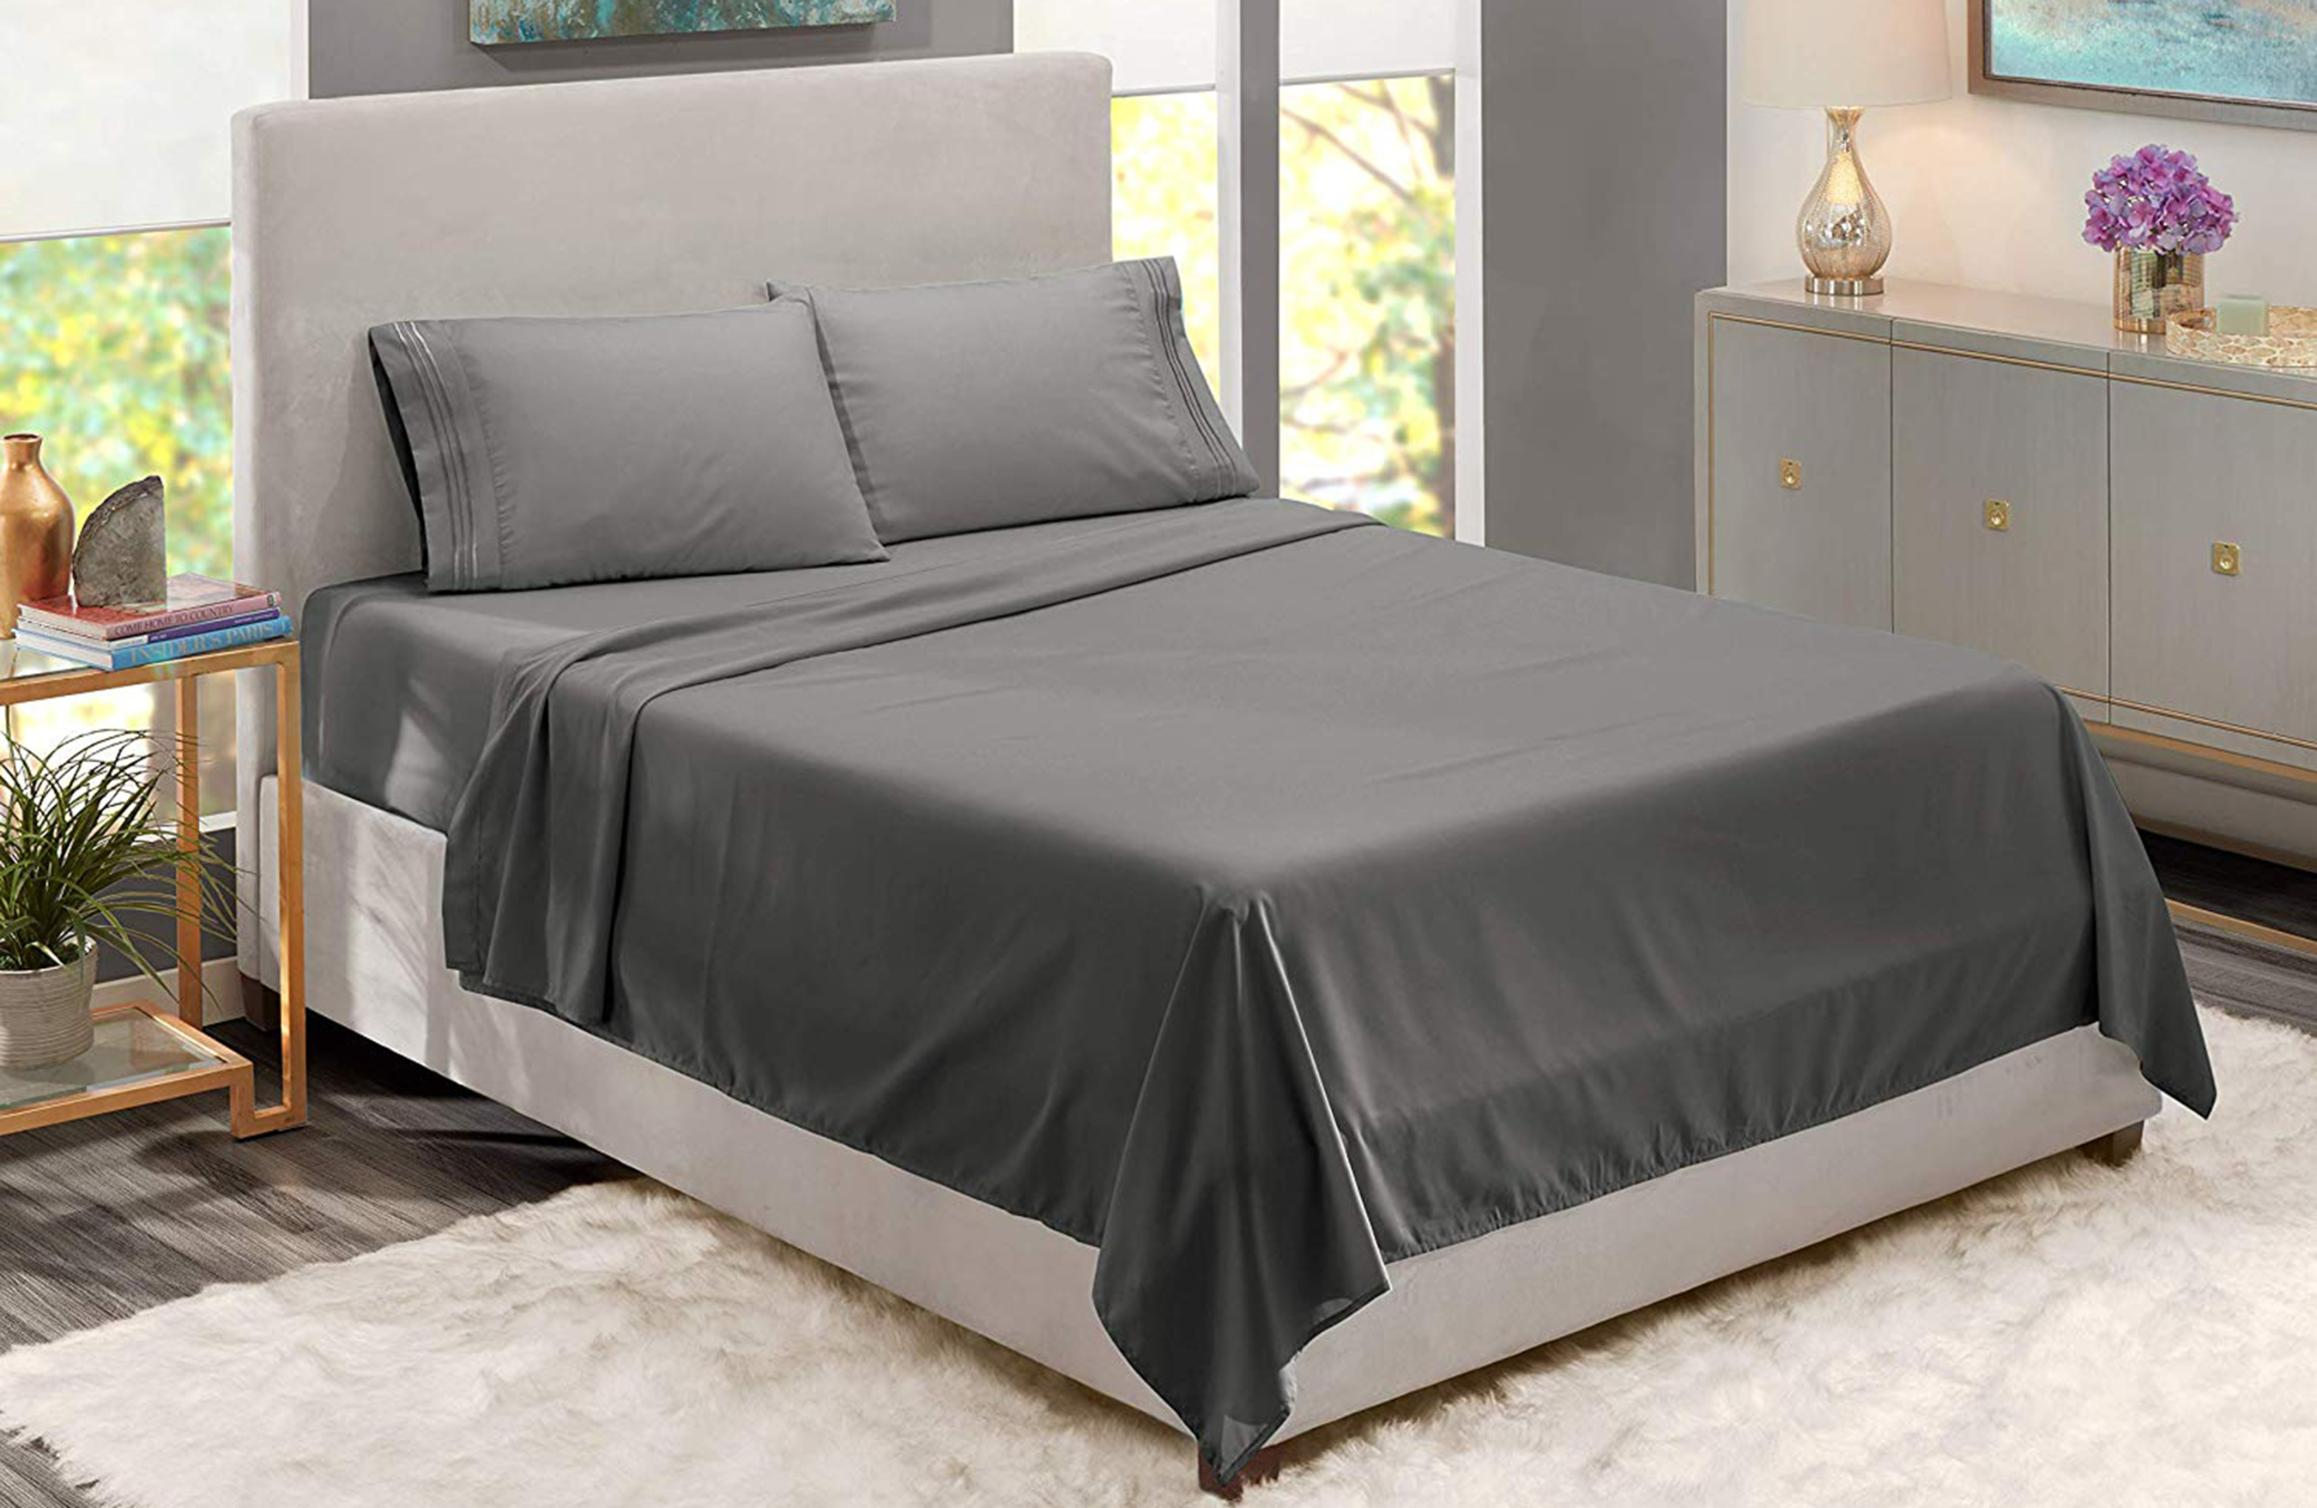 Best Sheets On Amazon The Top Rated Sets With 5 Star Ratings Cnn Underscored